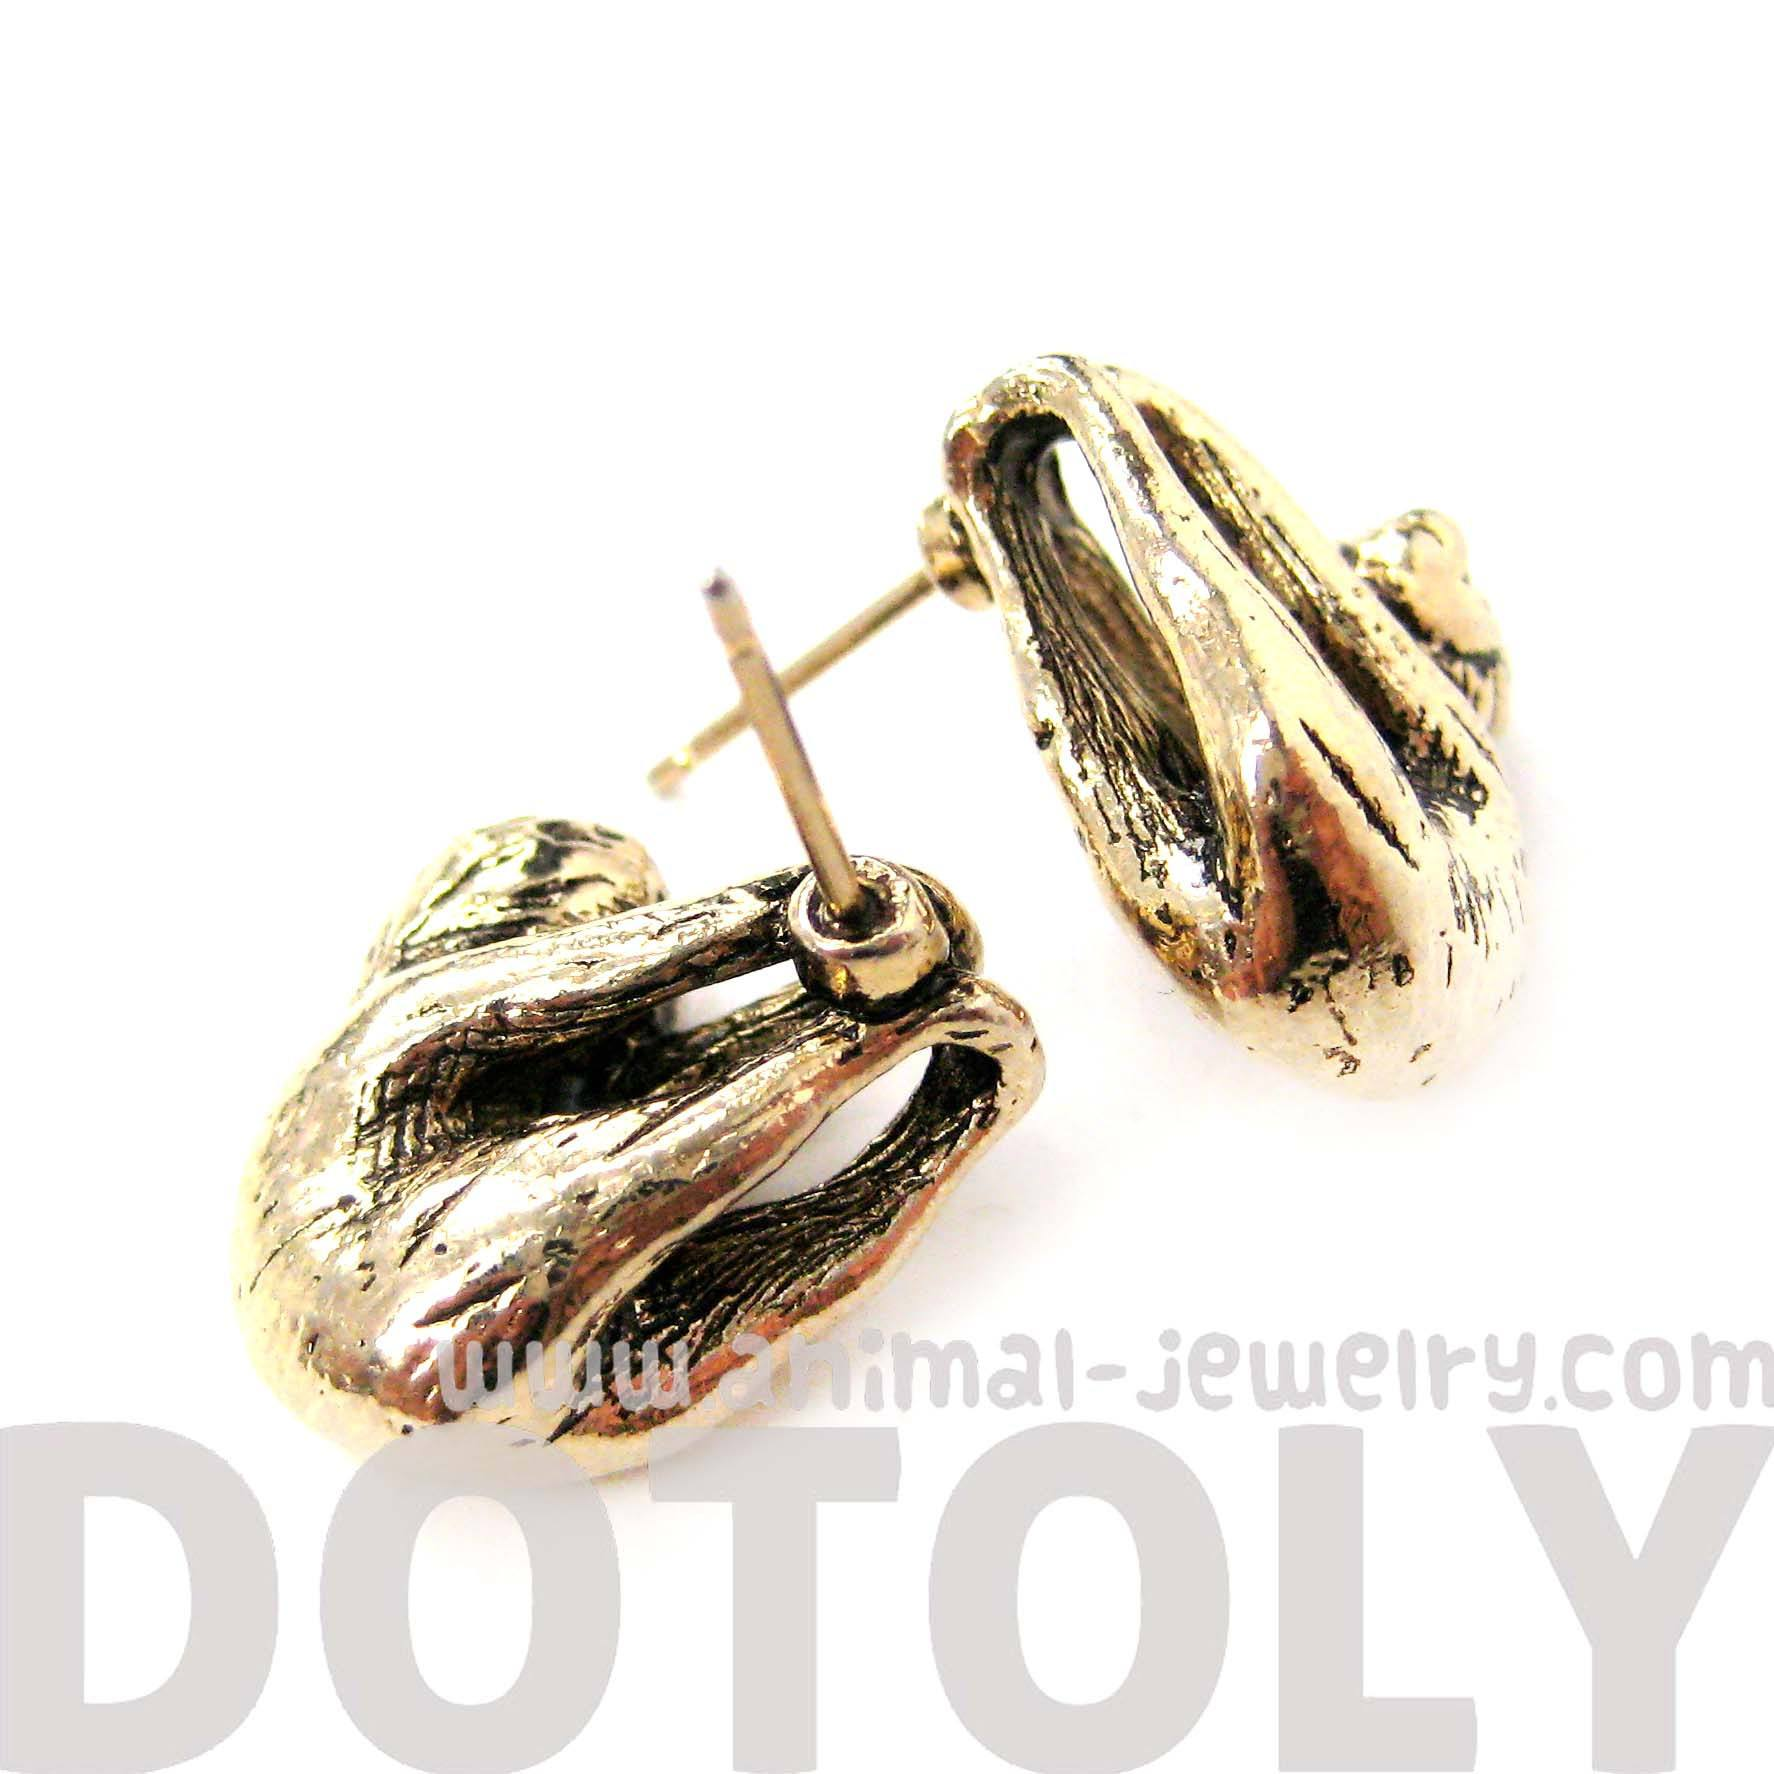 Sloth Shaped Animal Stud Earrings in Shiny Gold | Animal Jewelry